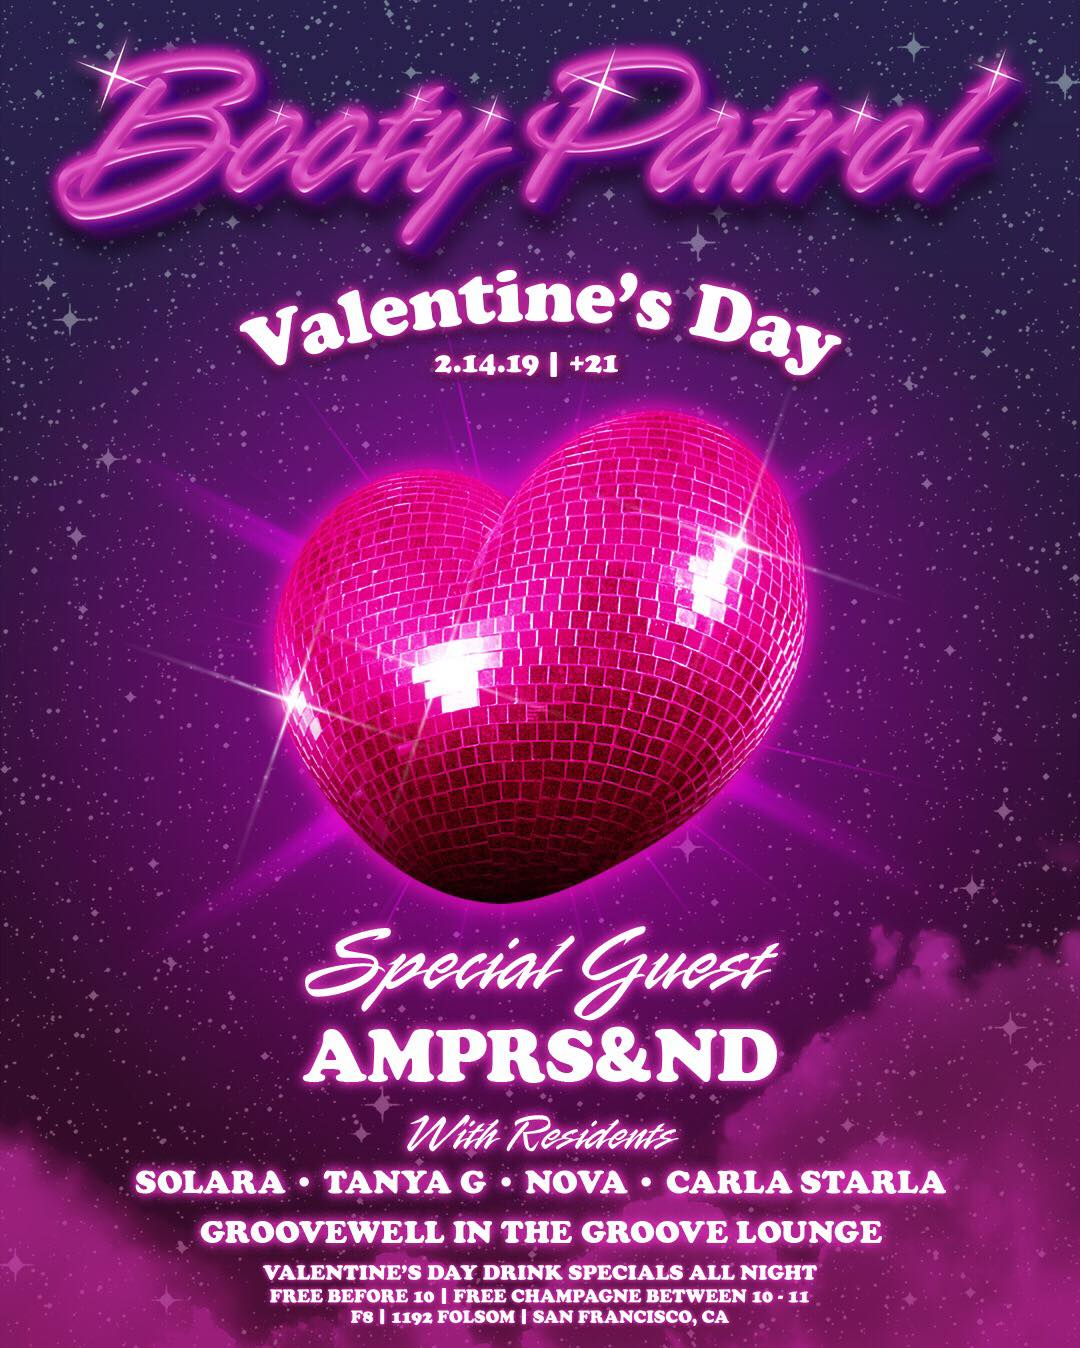 Booty Patrol w/AMPRS&ND & GROOVEWELL - Thursday Feb. 14 @ 9pmFREE Champagne 10-11pm